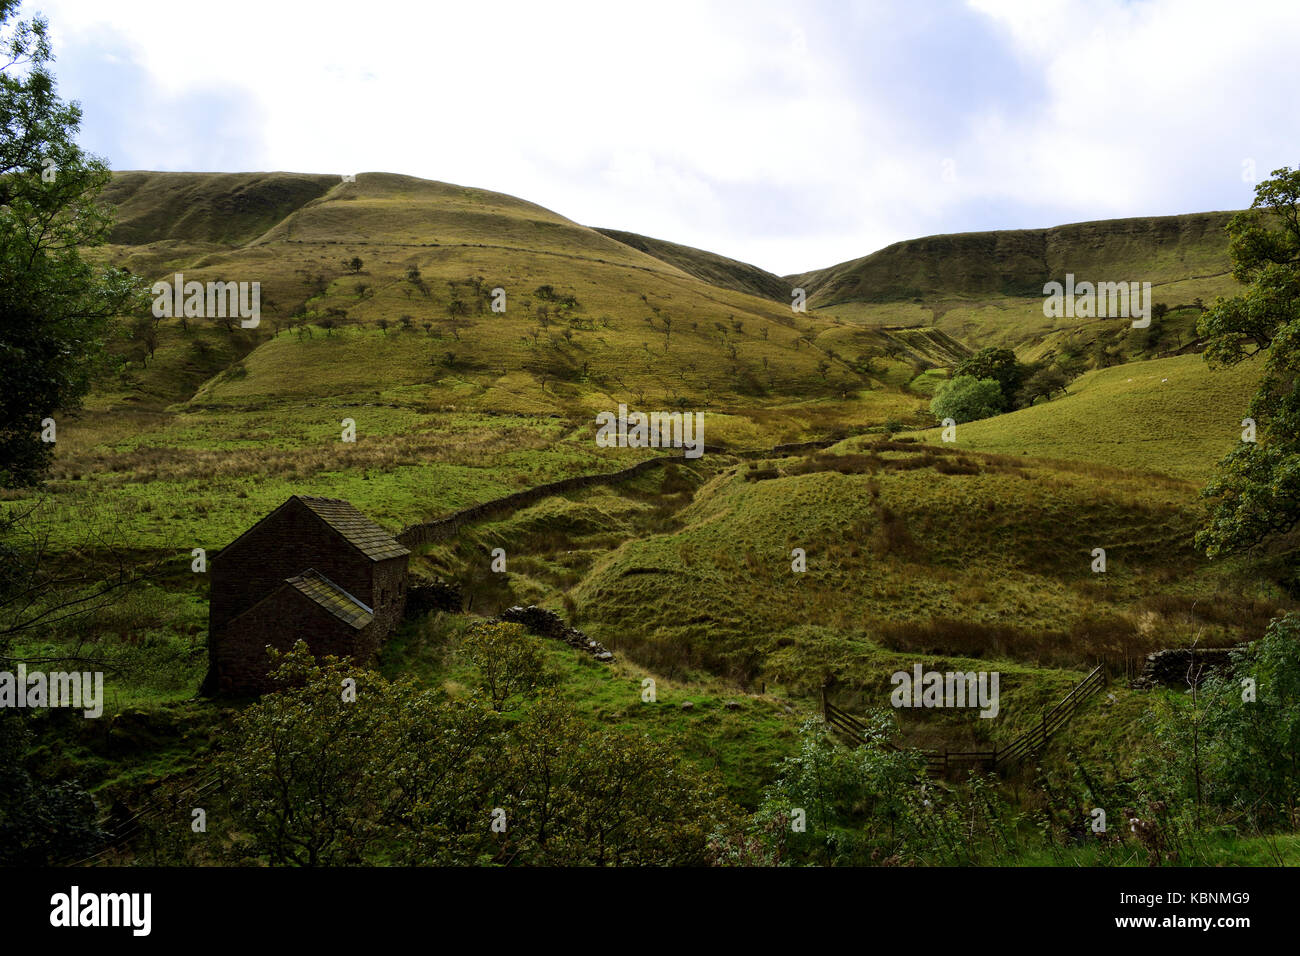 View from the Pennine Way, on the approach to Kinder Scout - Stock Image